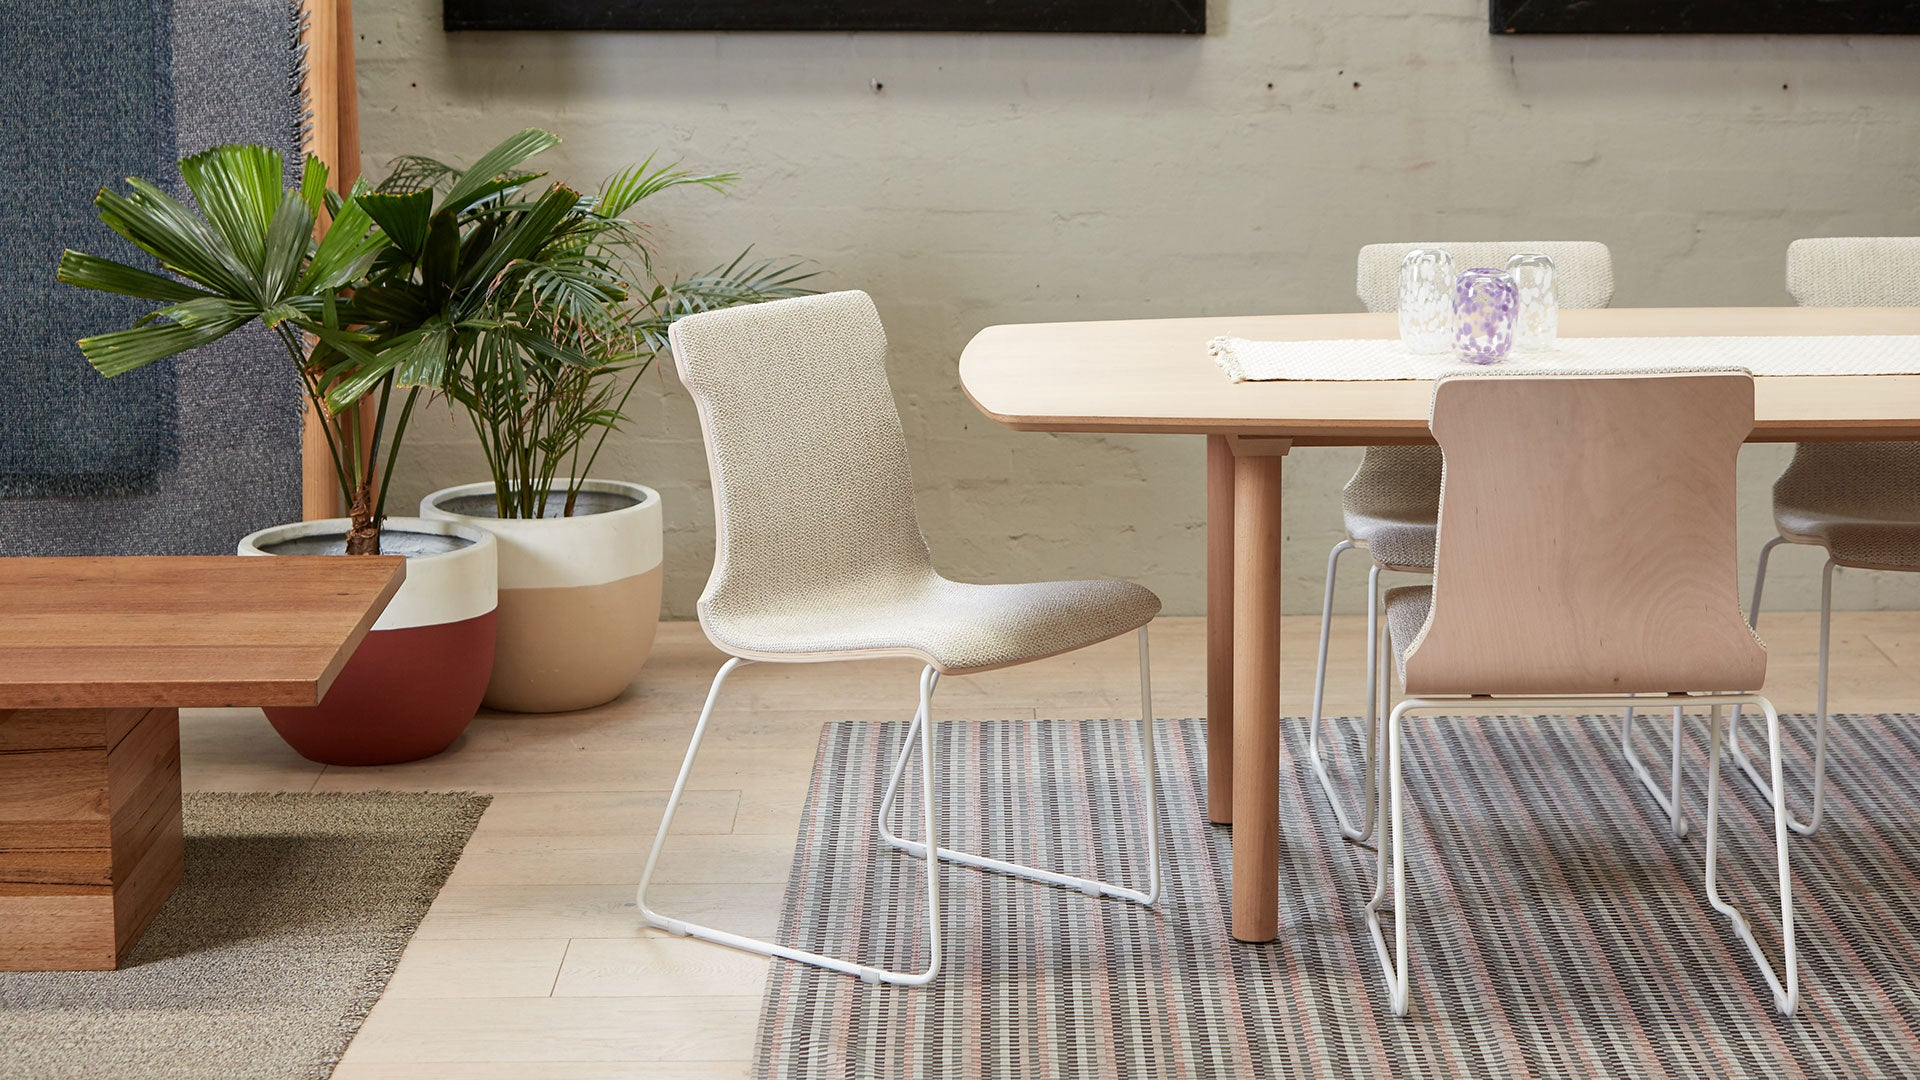 Konverse Upholstered Chair